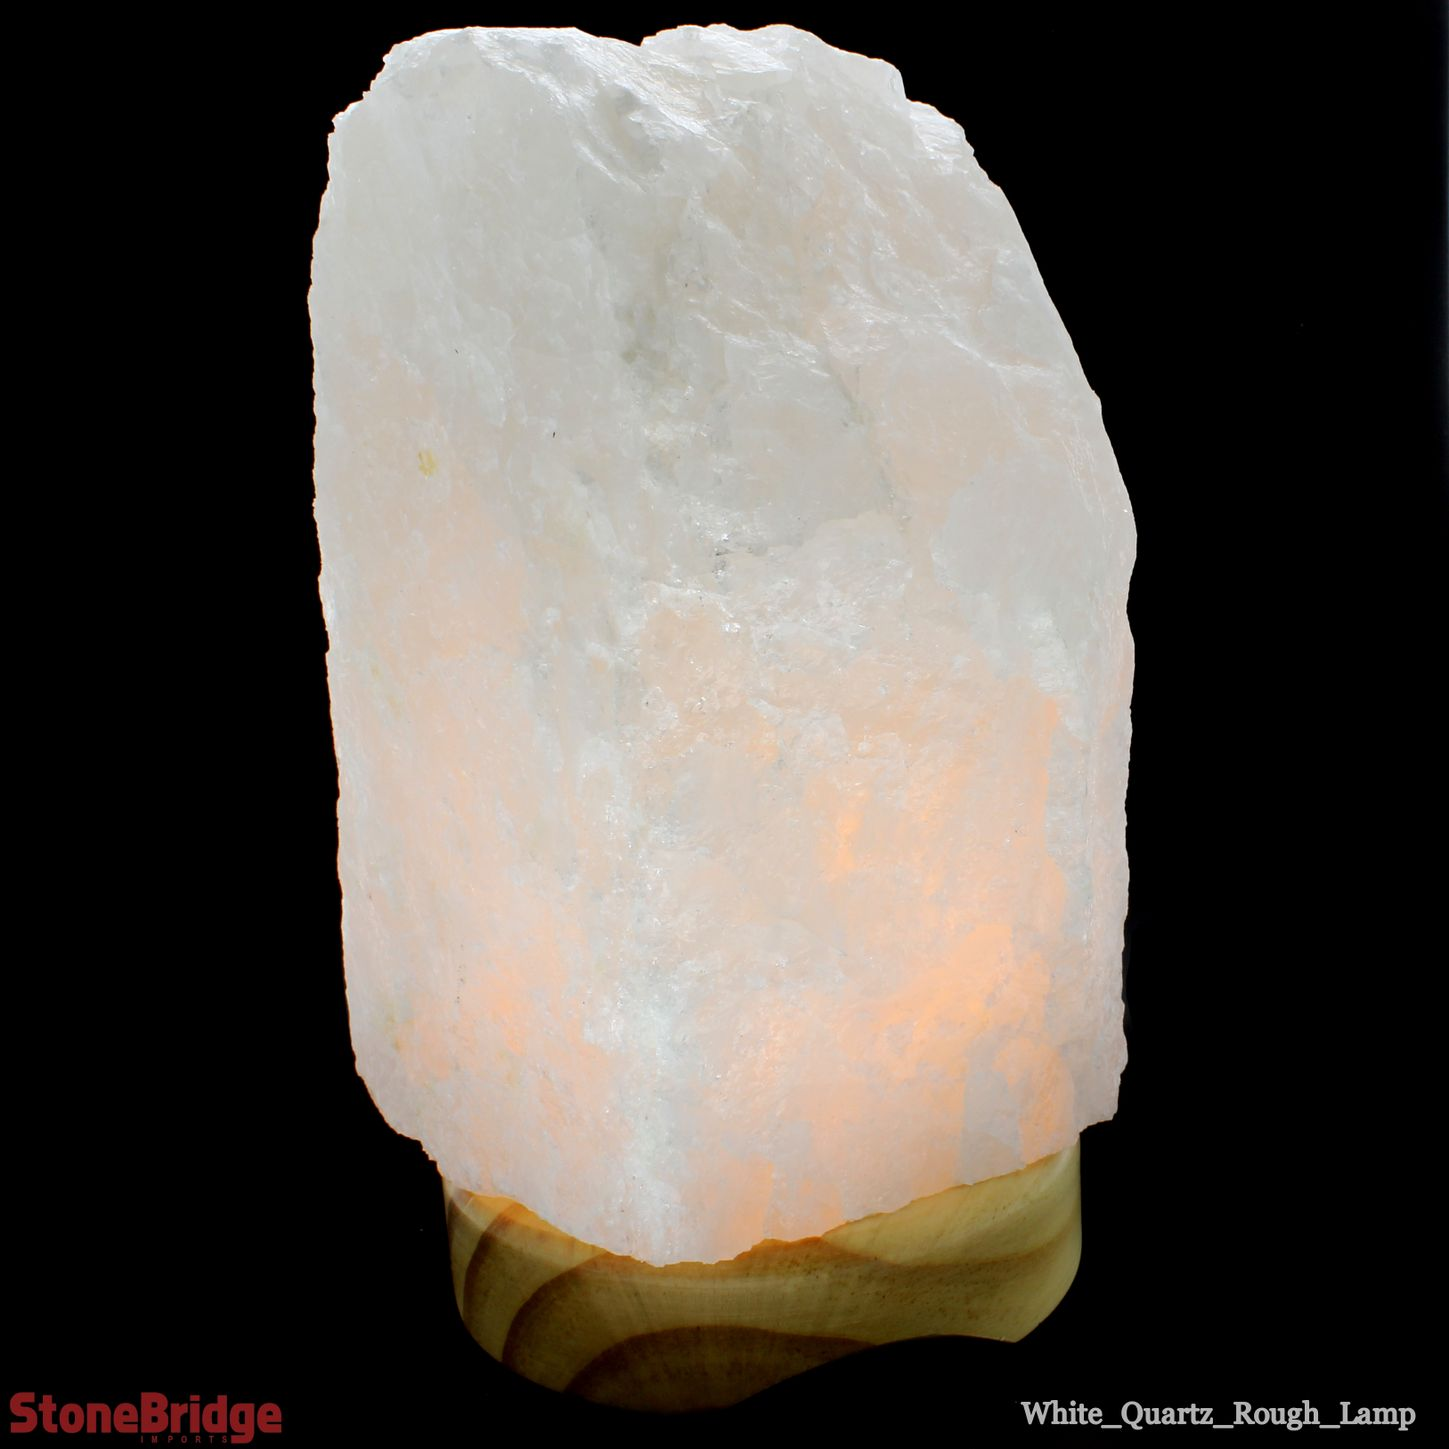 LACRW_White_Quartz_Rough_Lamp_5.jpg